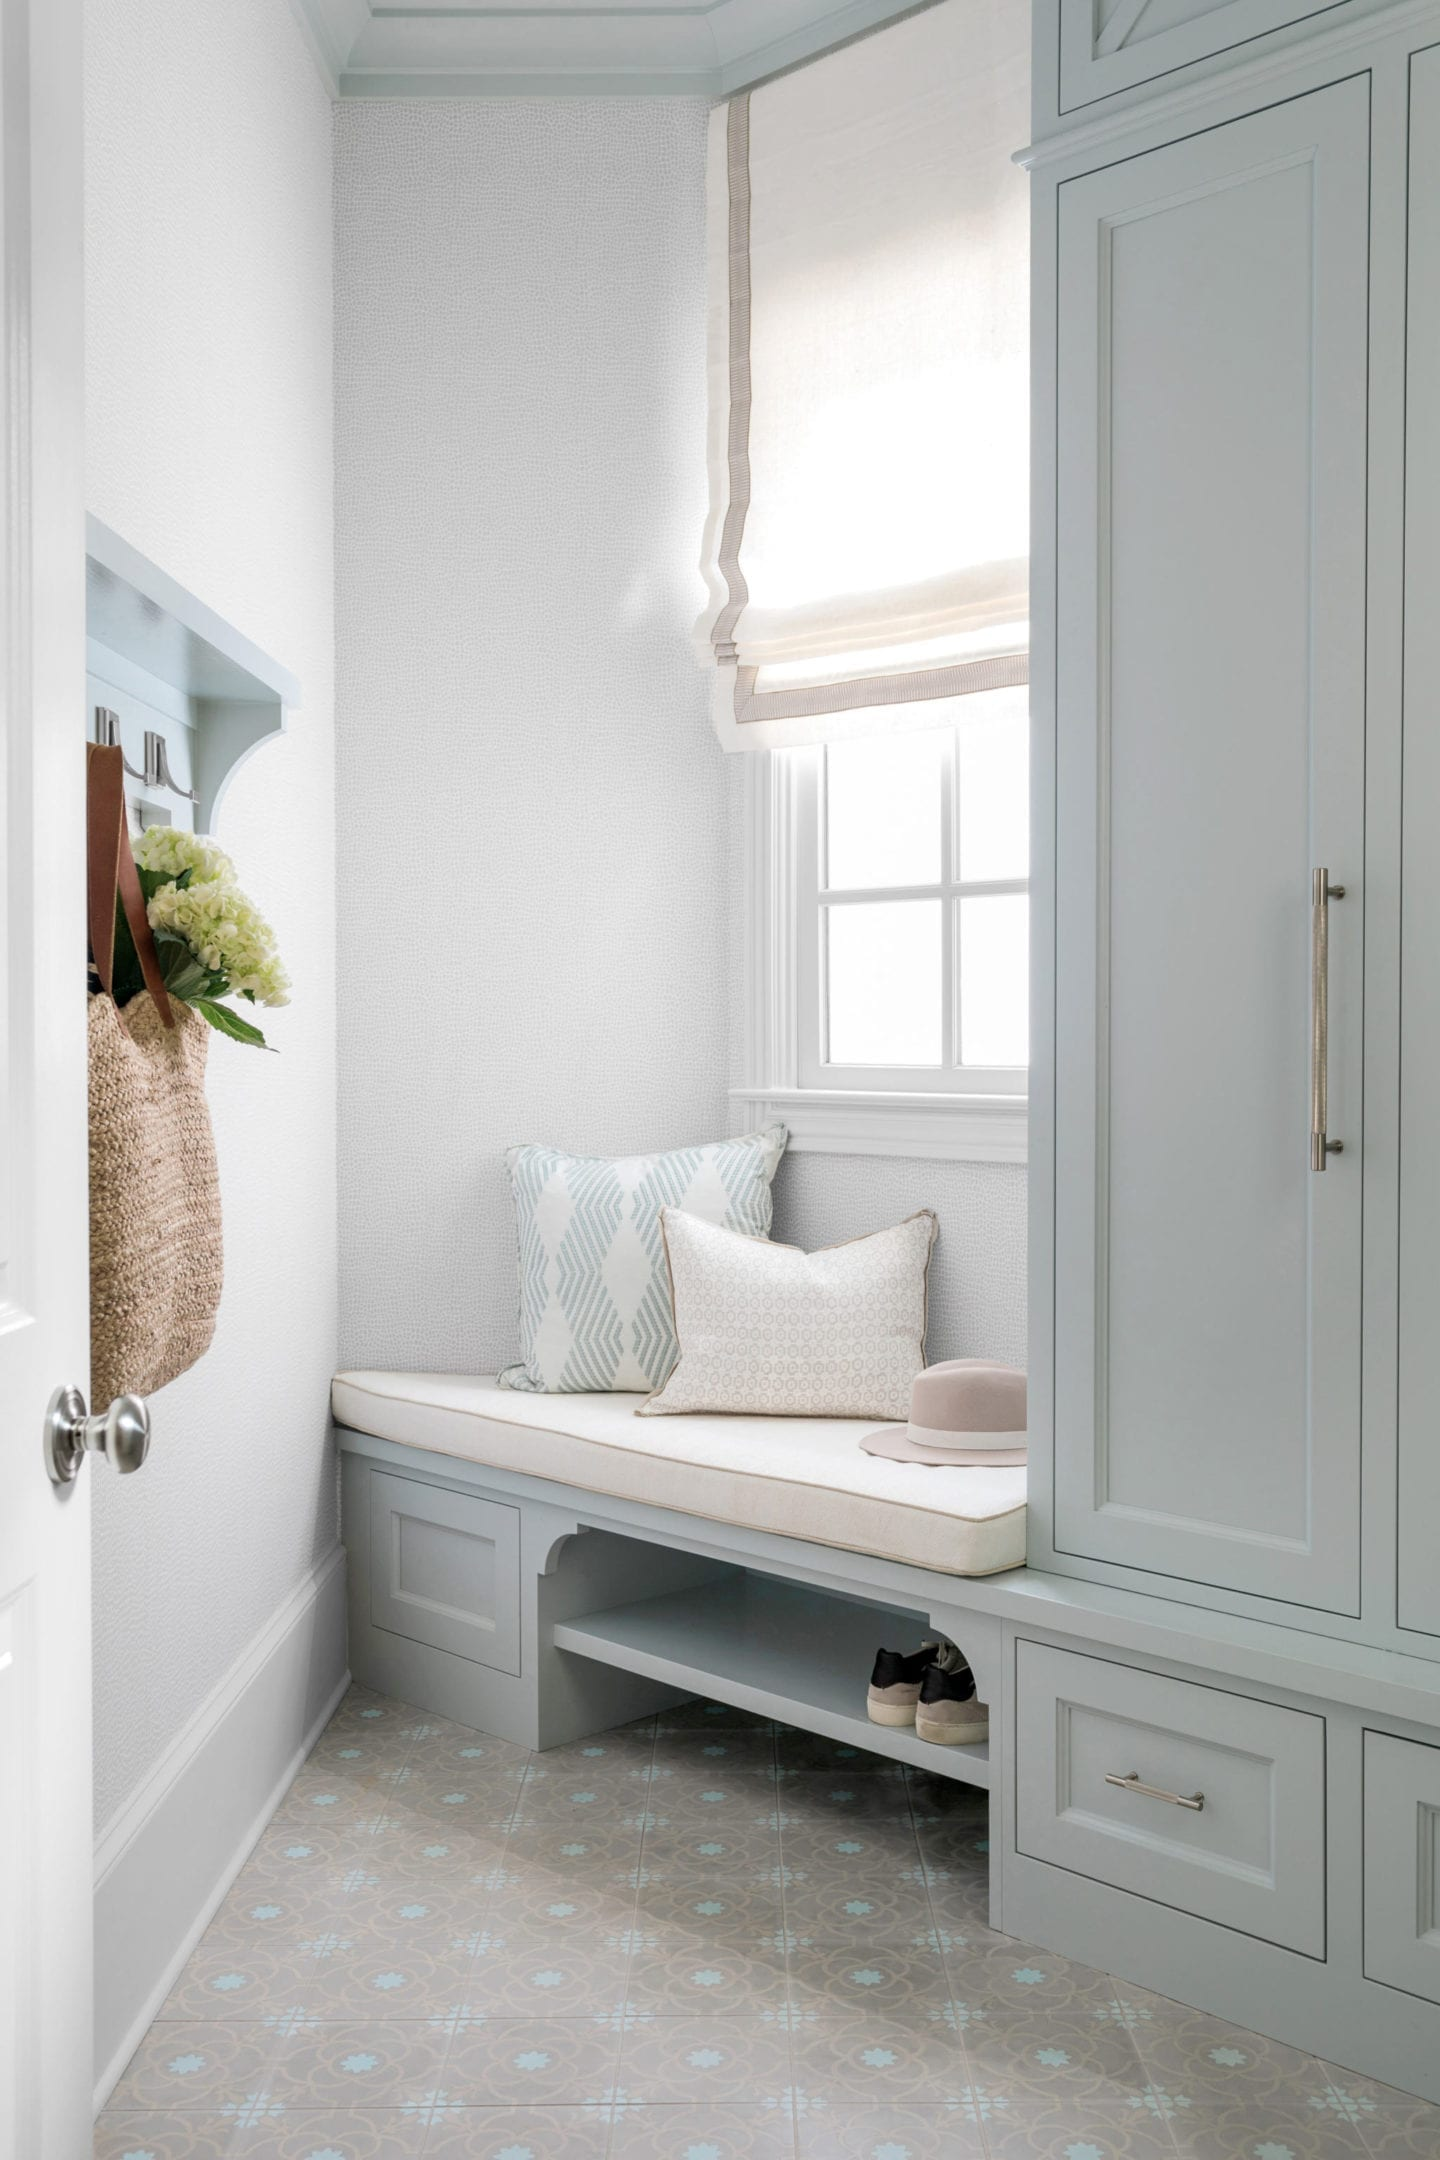 Mudroom Built In Cabinet Ideas with built in shoe storage, mudroom bench, blue cabinets and window covered in roman shade.